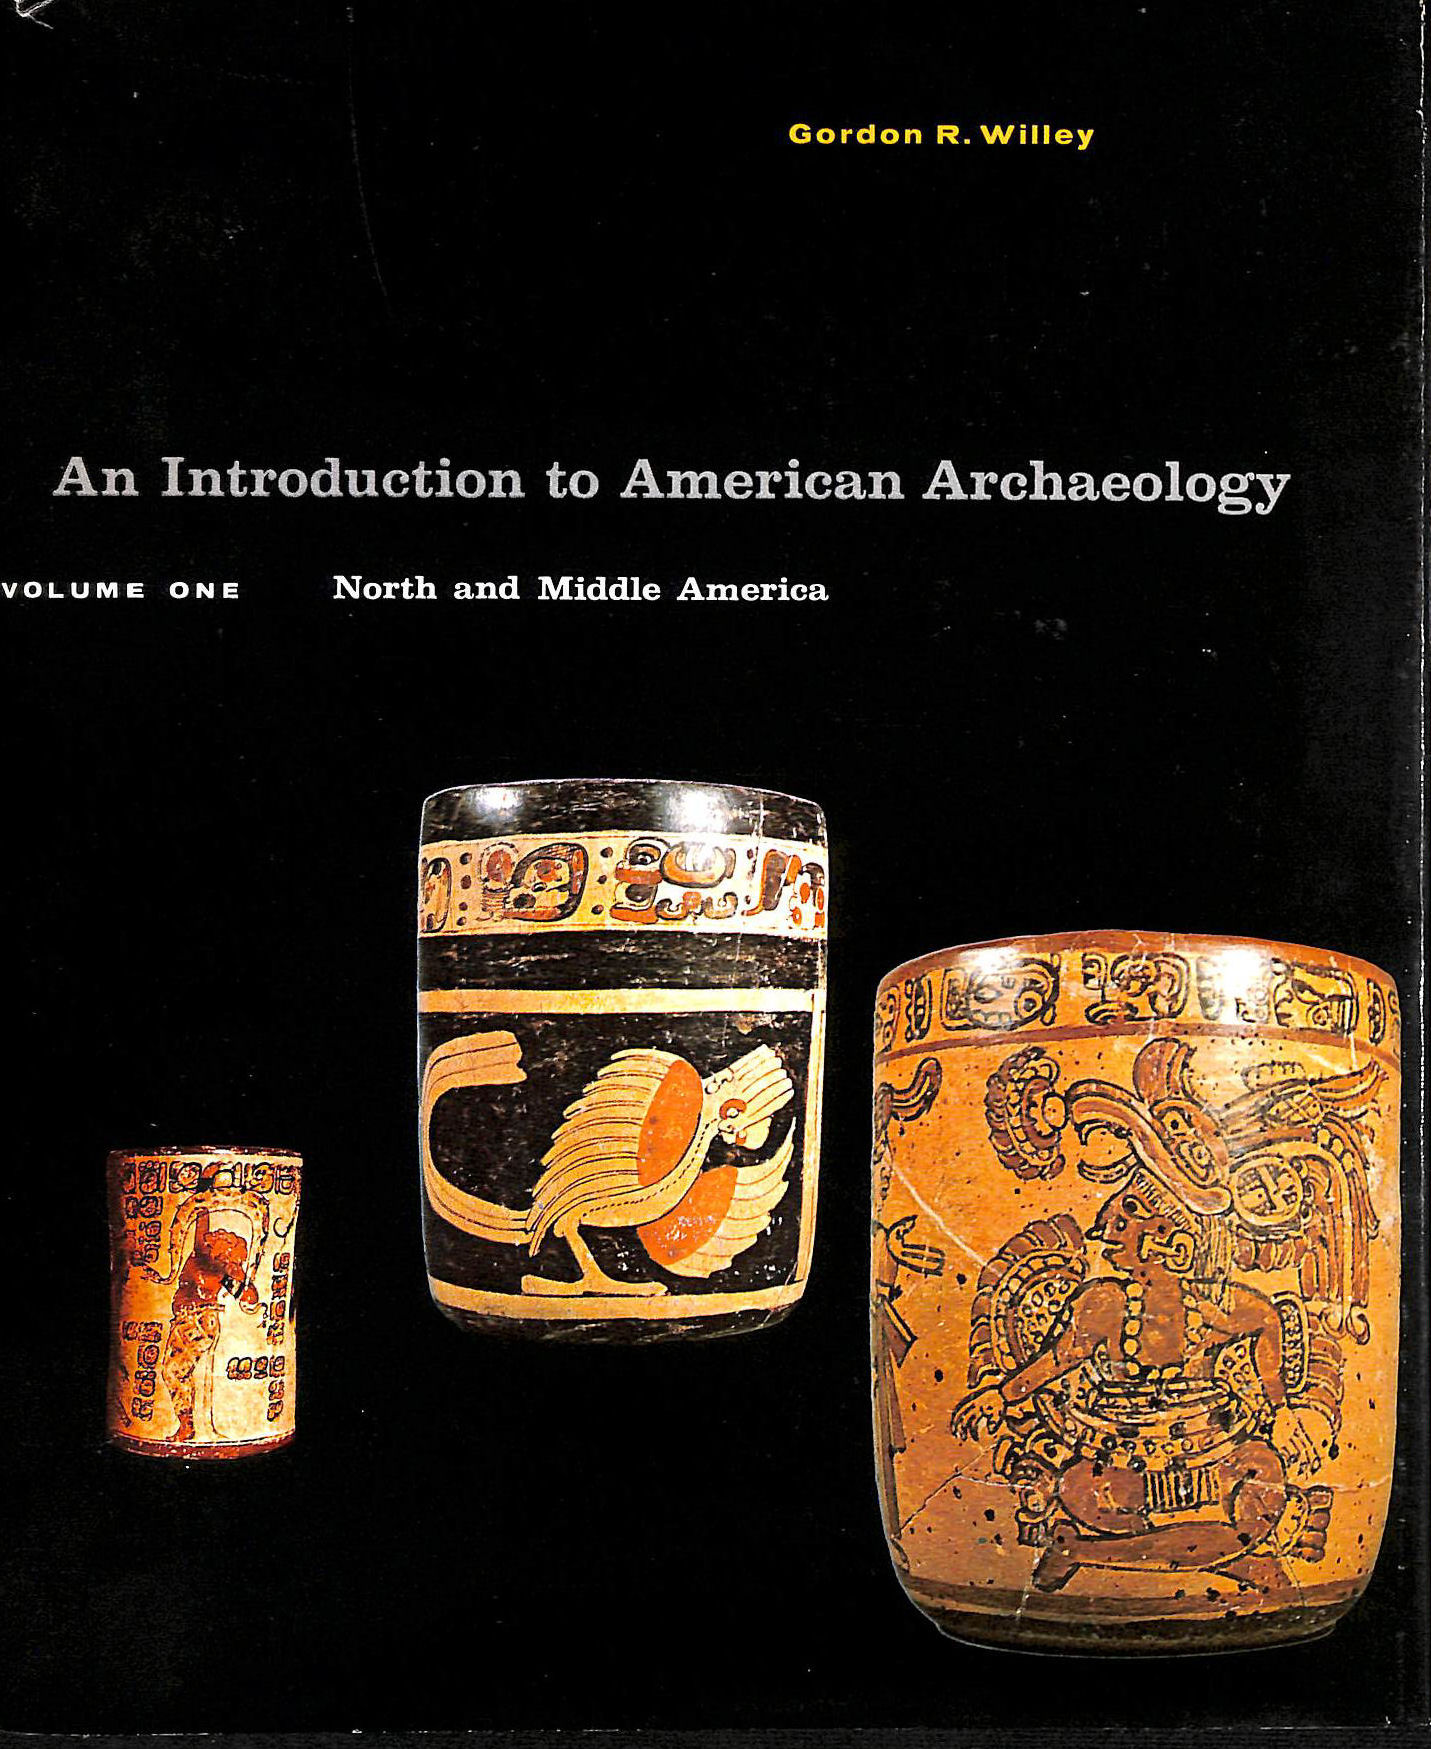 Image for An Introduction to American Archaeology Volume One North and Middle America by Willey, Gordon R. (1966) Hardcover